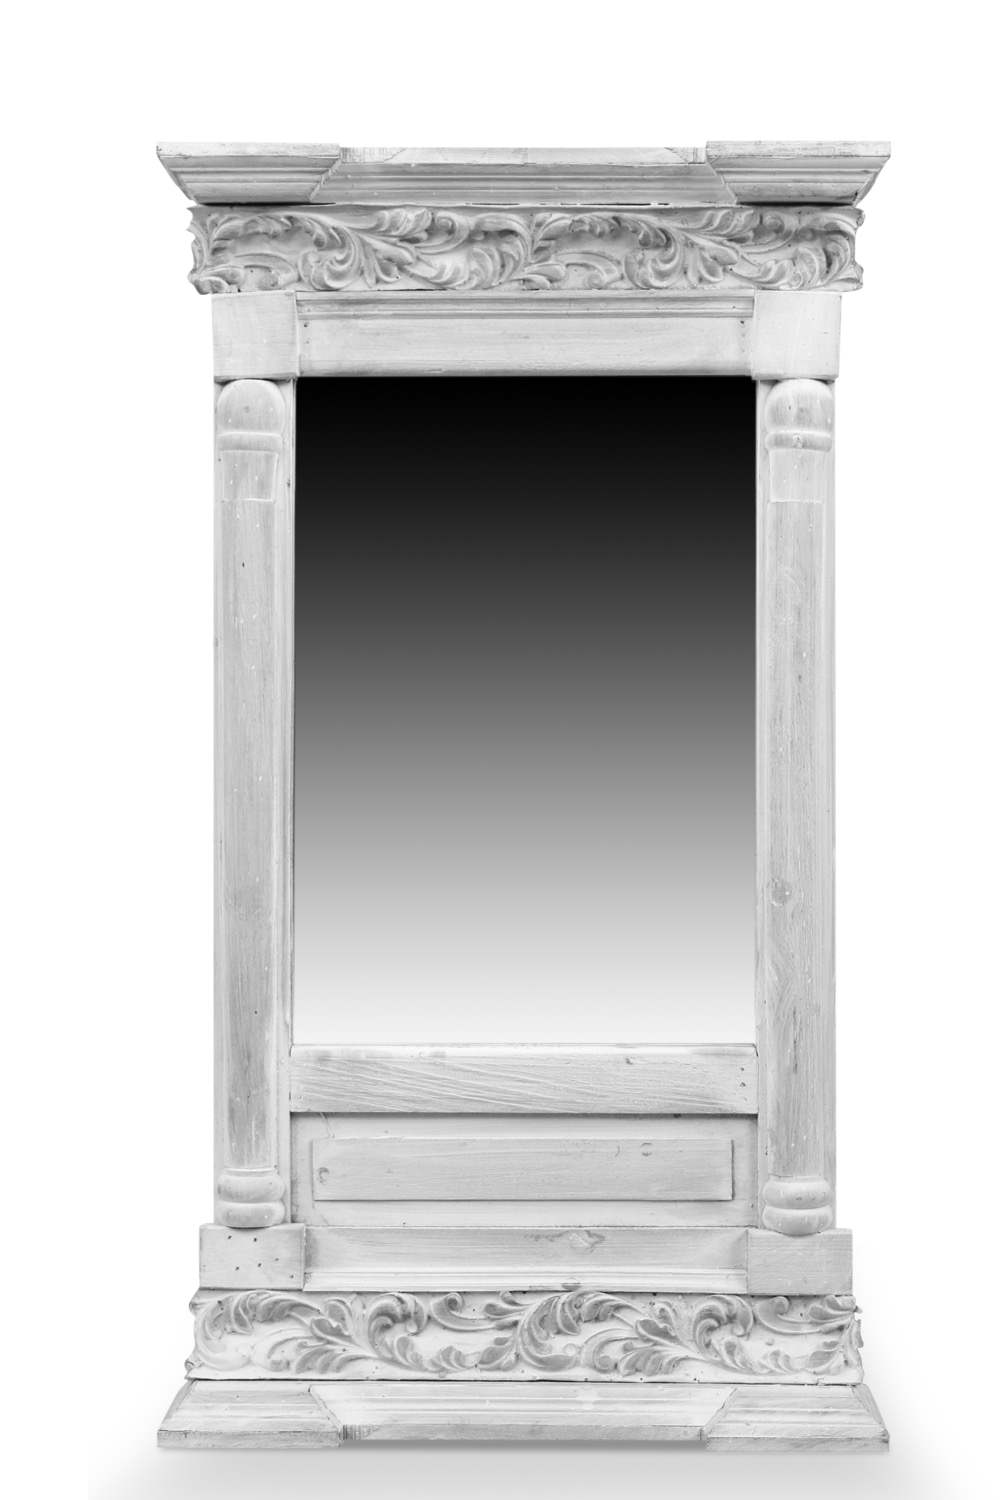 miroir ancien rectangulaire vertical bois ceruse blanc 42x10x75cm. Black Bedroom Furniture Sets. Home Design Ideas